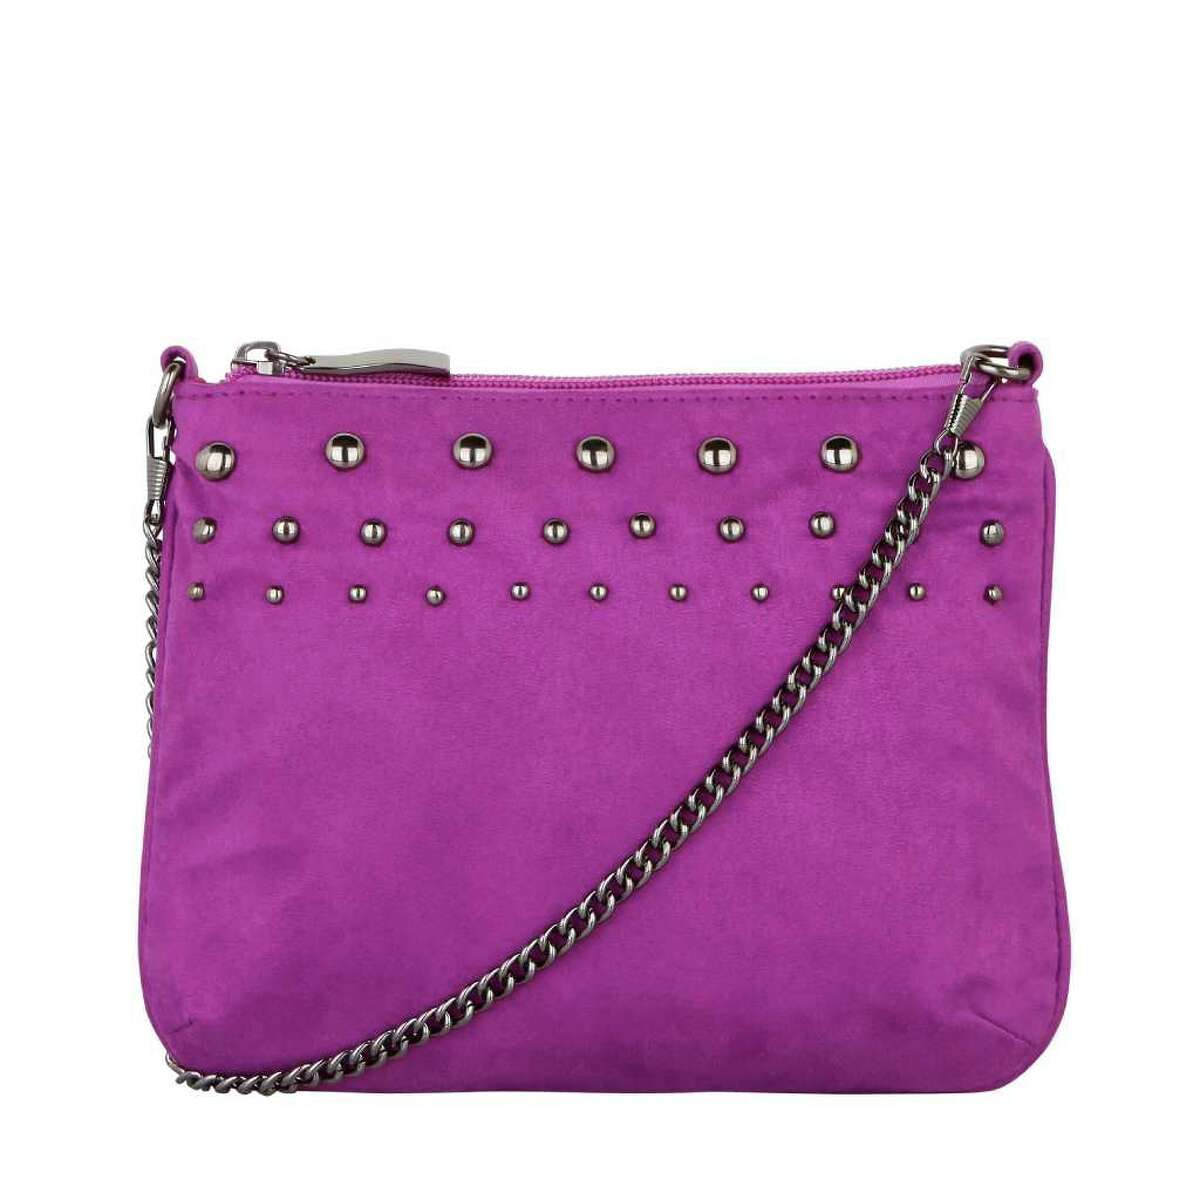 The Christian Siriano for Payless Chaney cross-body bag costs $22.99 and is available through November.